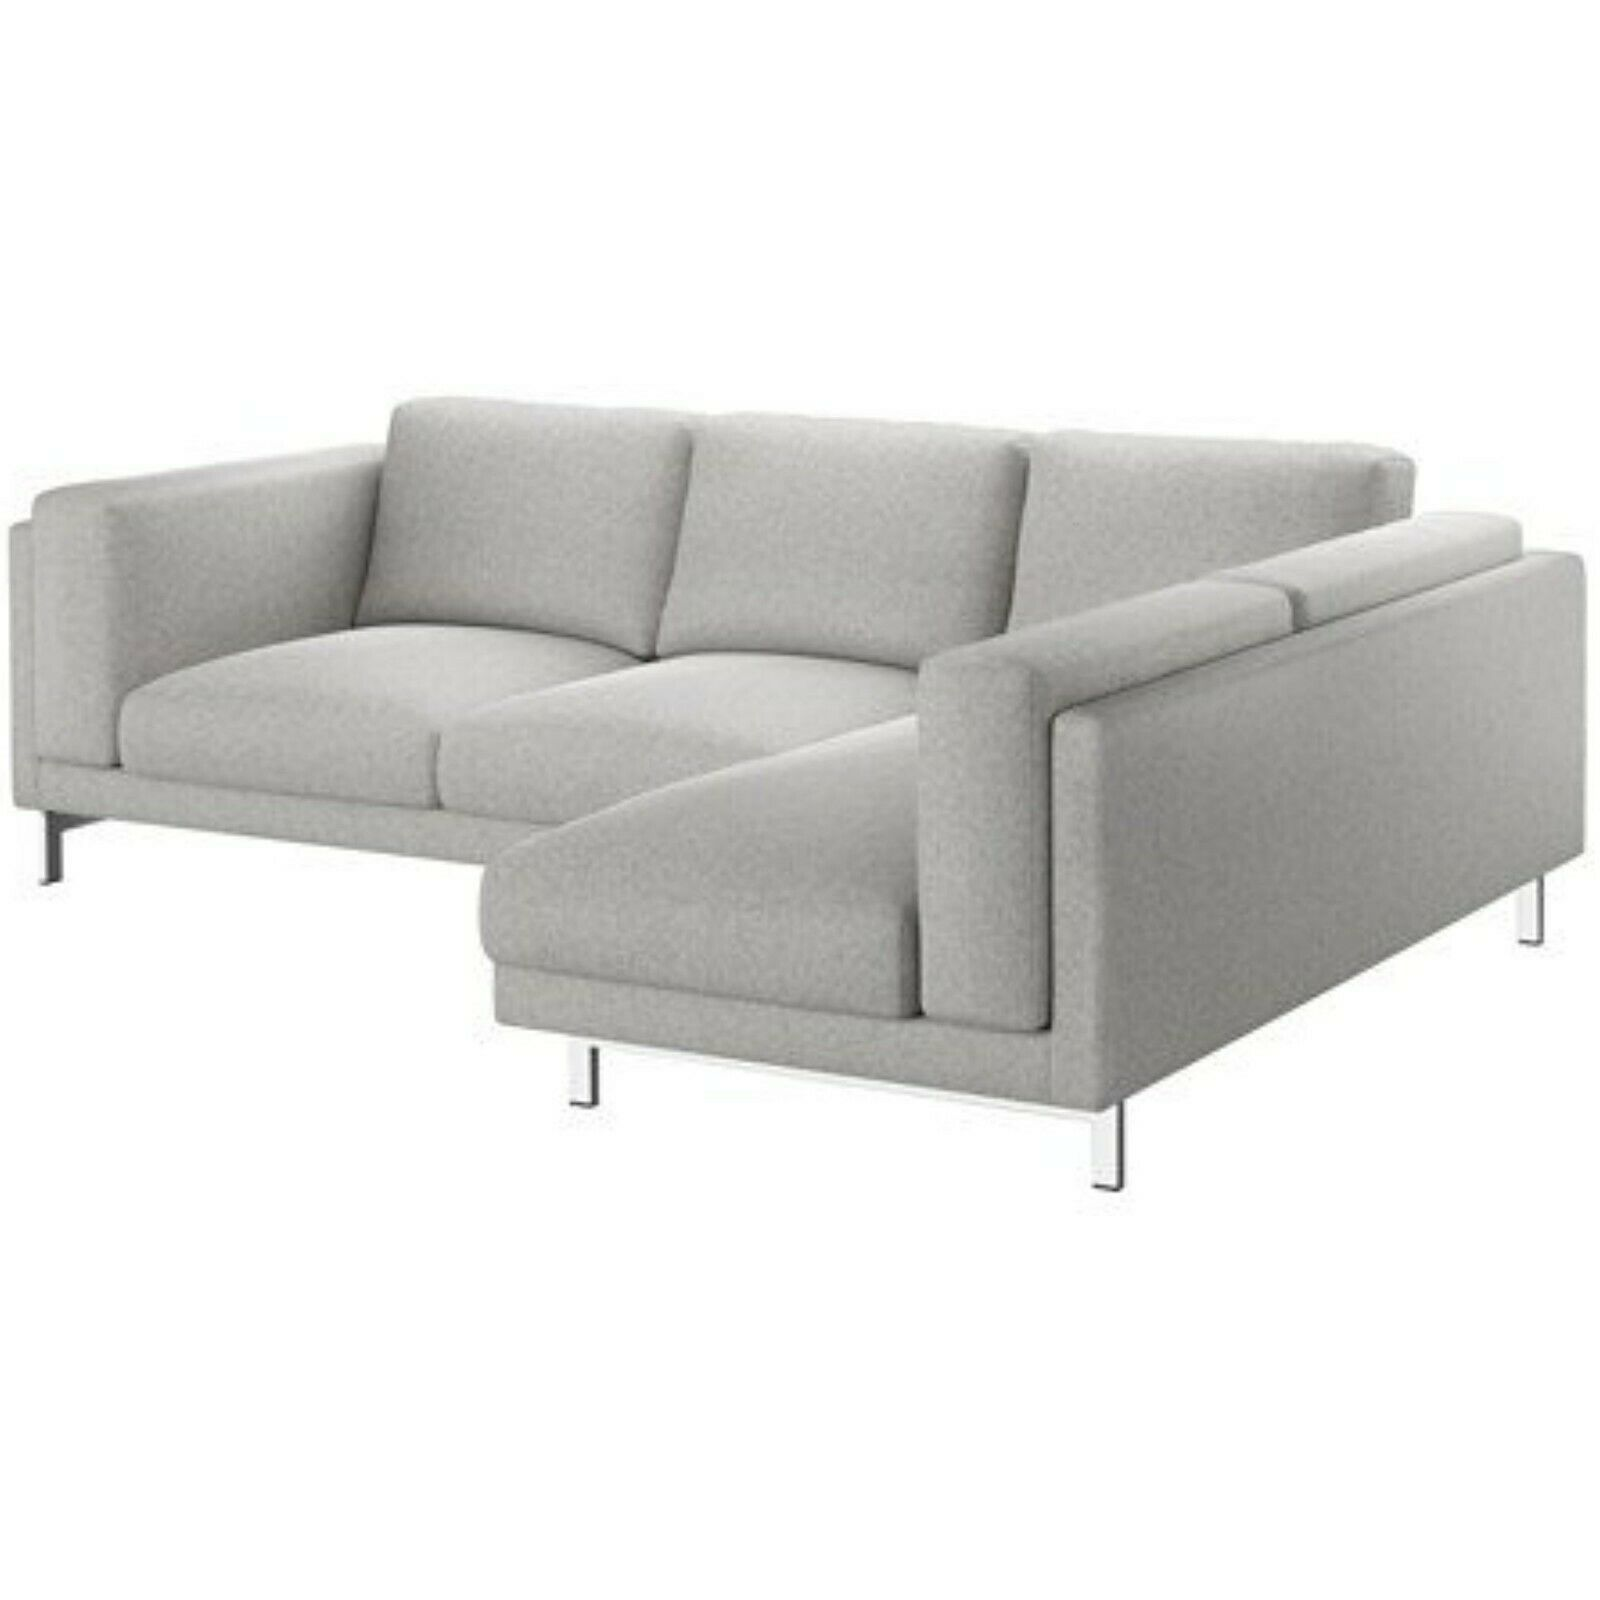 Primary image for IKEA NOCKEBY COVER SLIPCOVER FOR SOFA WITH RIGHT CHAISE Tallmyra white/Black